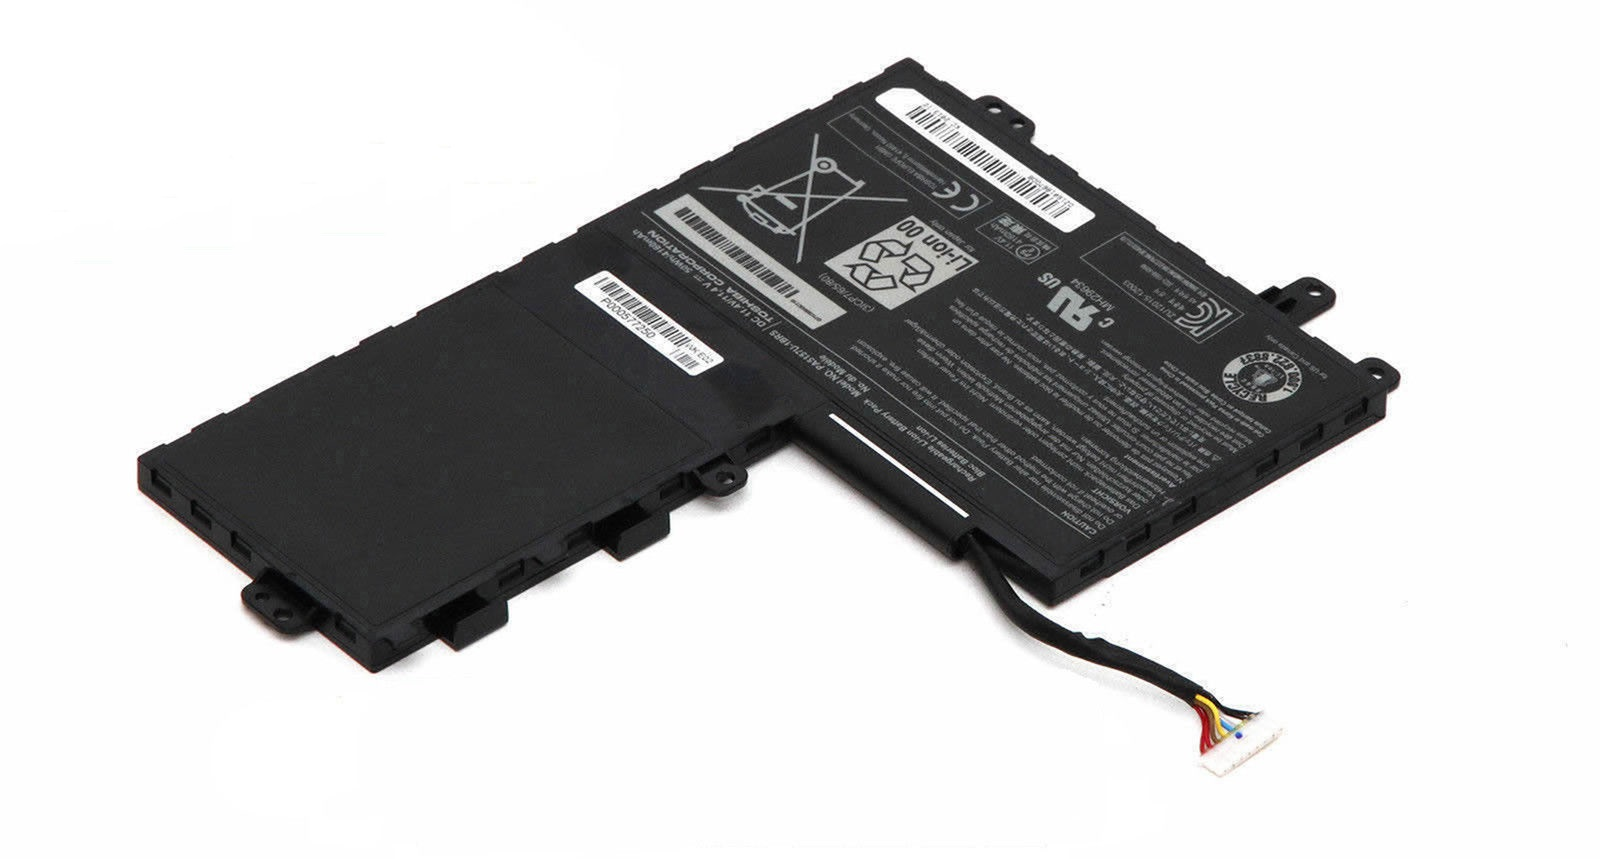 Toshiba Satellite M50-A-119 M50-A-11C M50-A-11E compatible battery